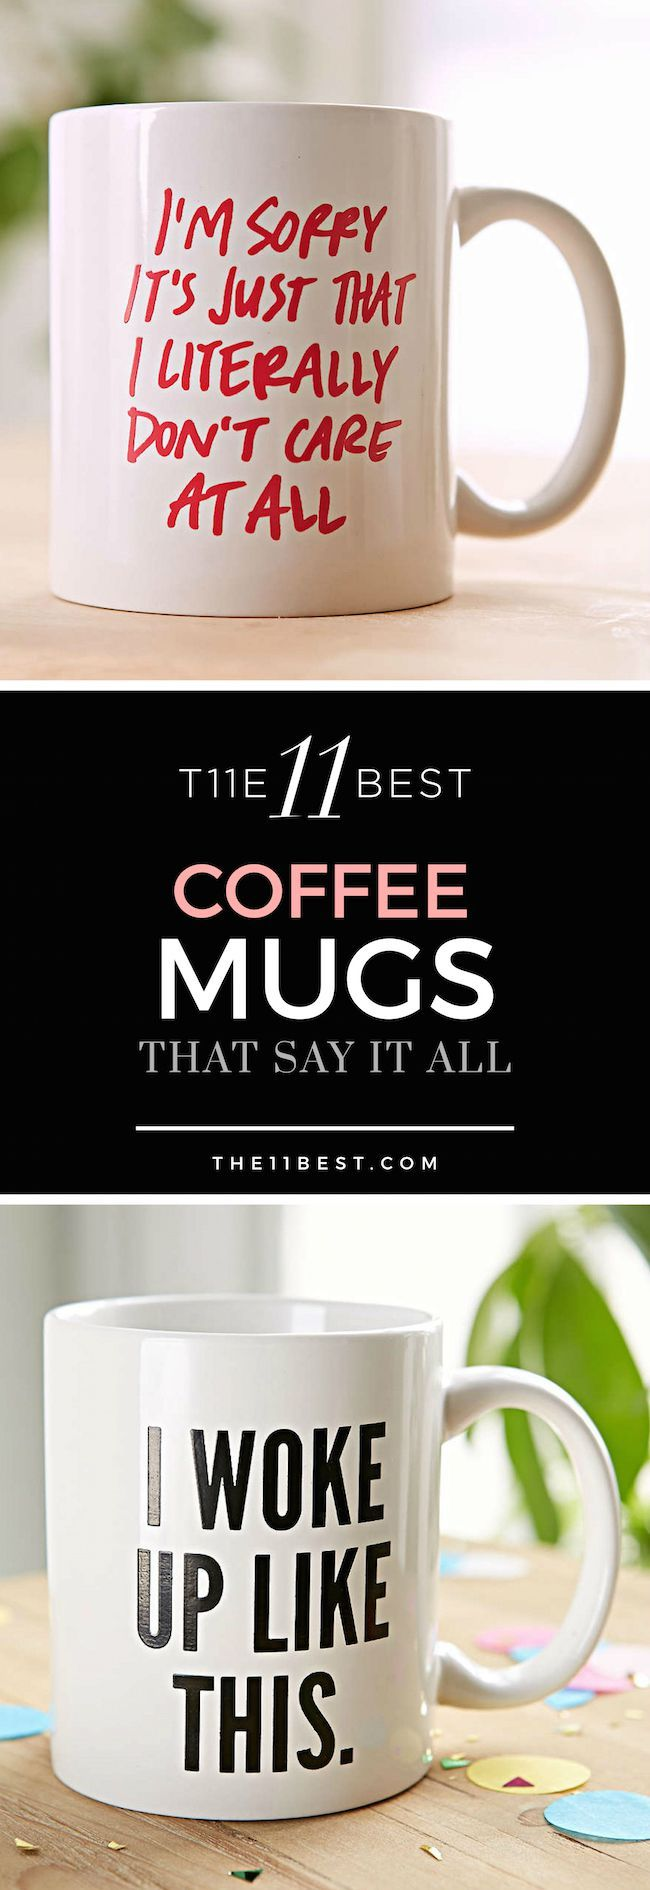 The 11 Best Coffee Mugs that Say it All!